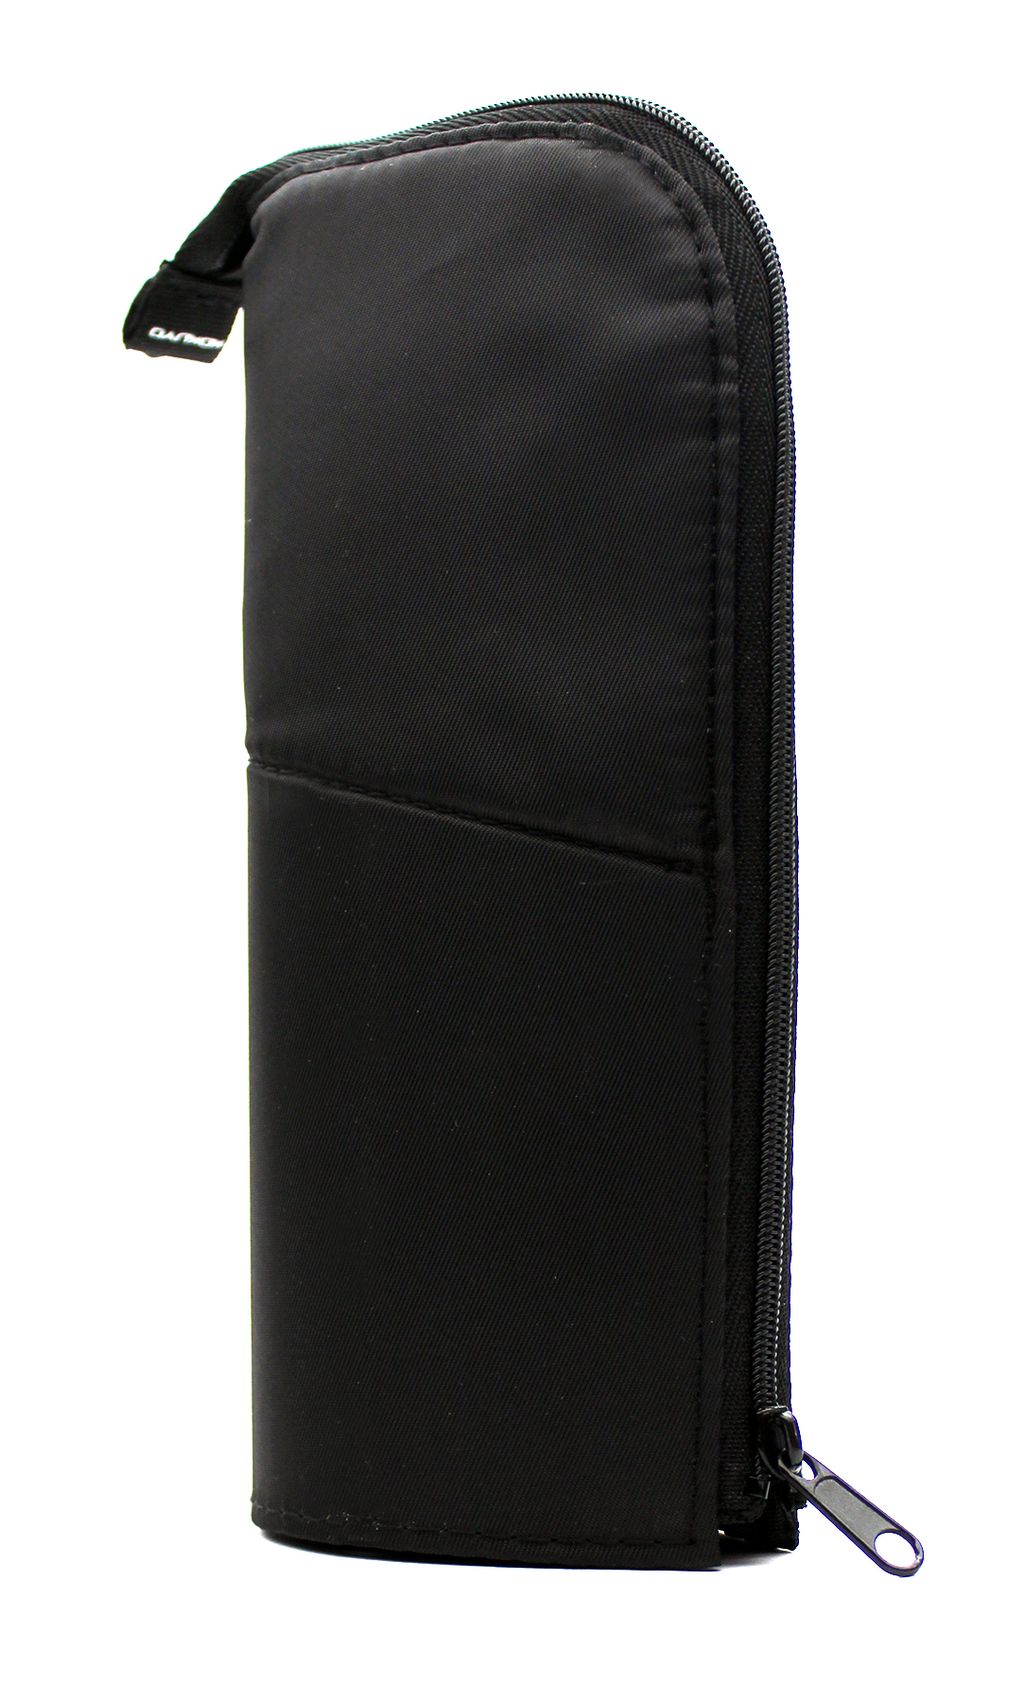 Kokuyo NeoCritz Pencil Case - Black